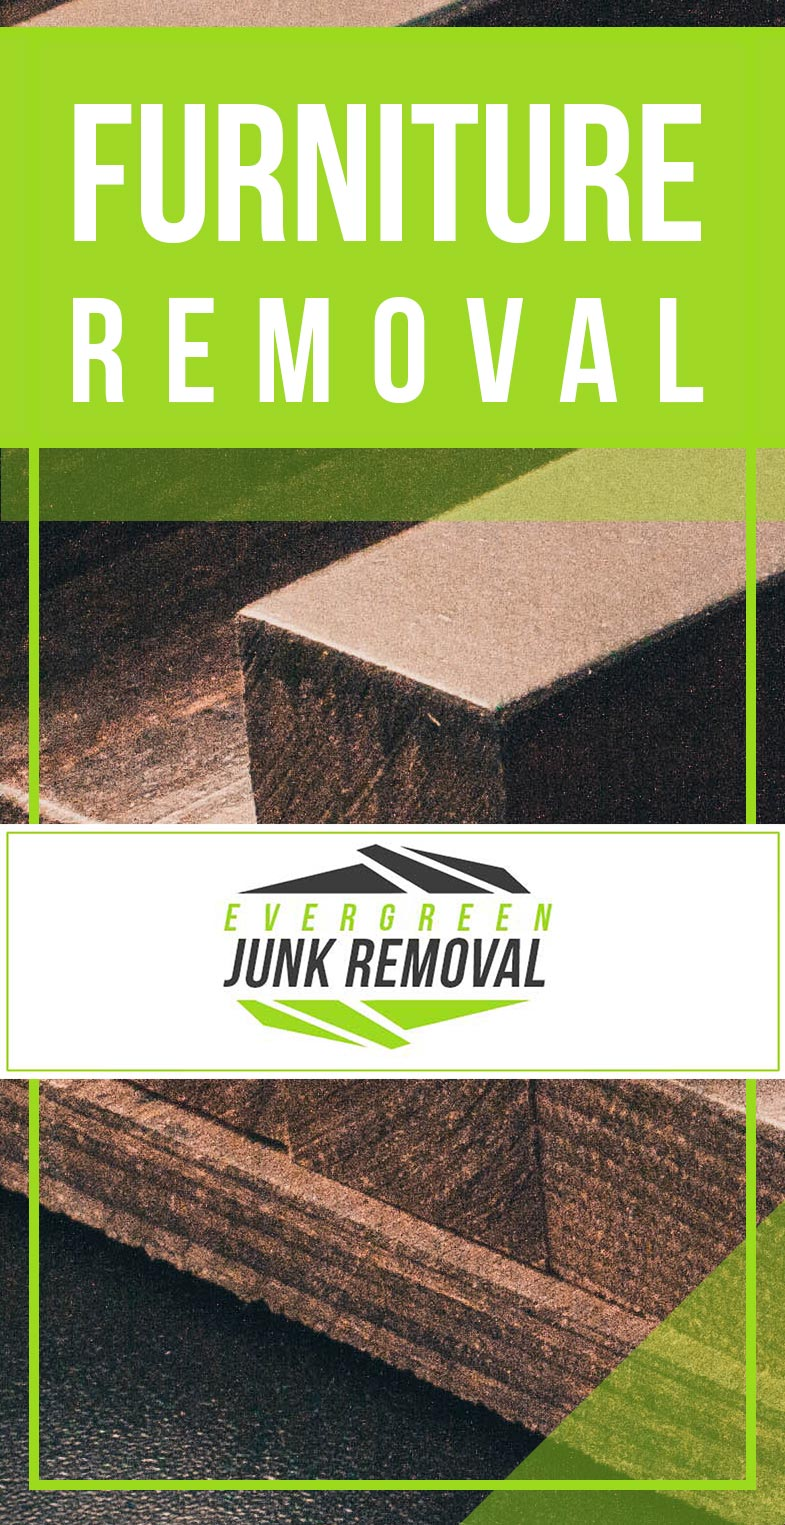 North-Bay-Village-Furniture-Removal